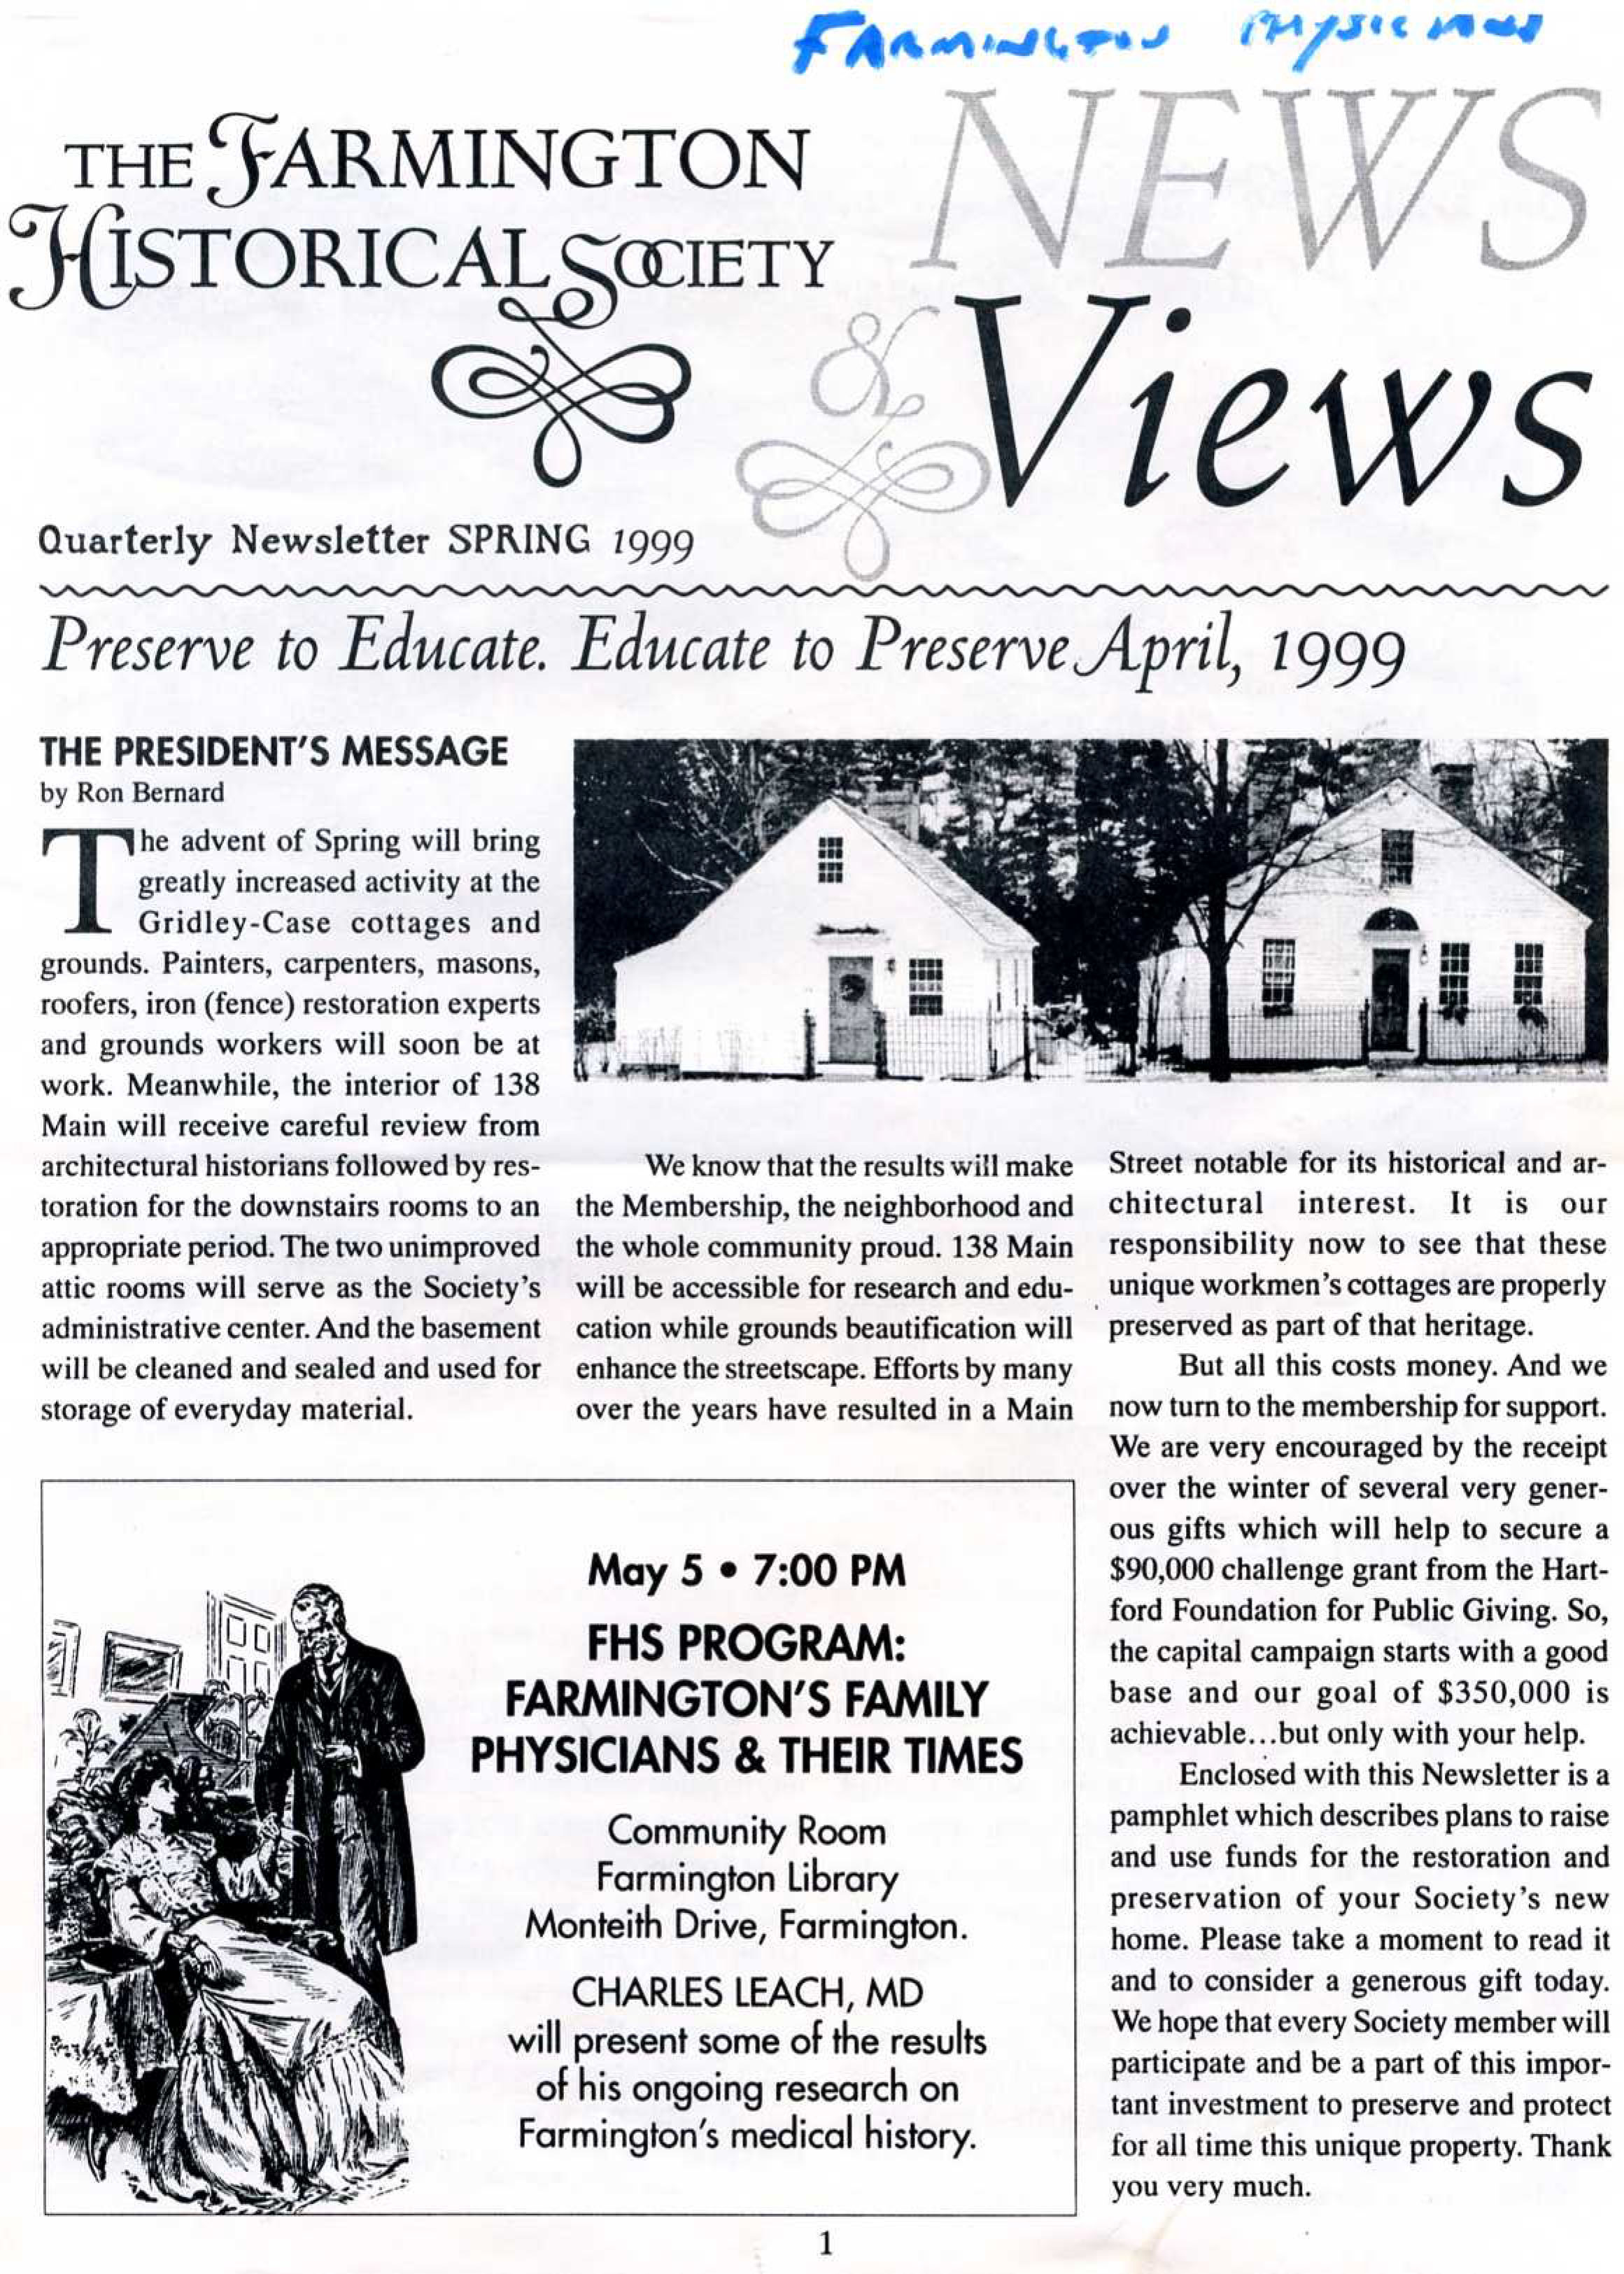 http://fhs-ct.org/1999/04/10/april-1999-newsletter/